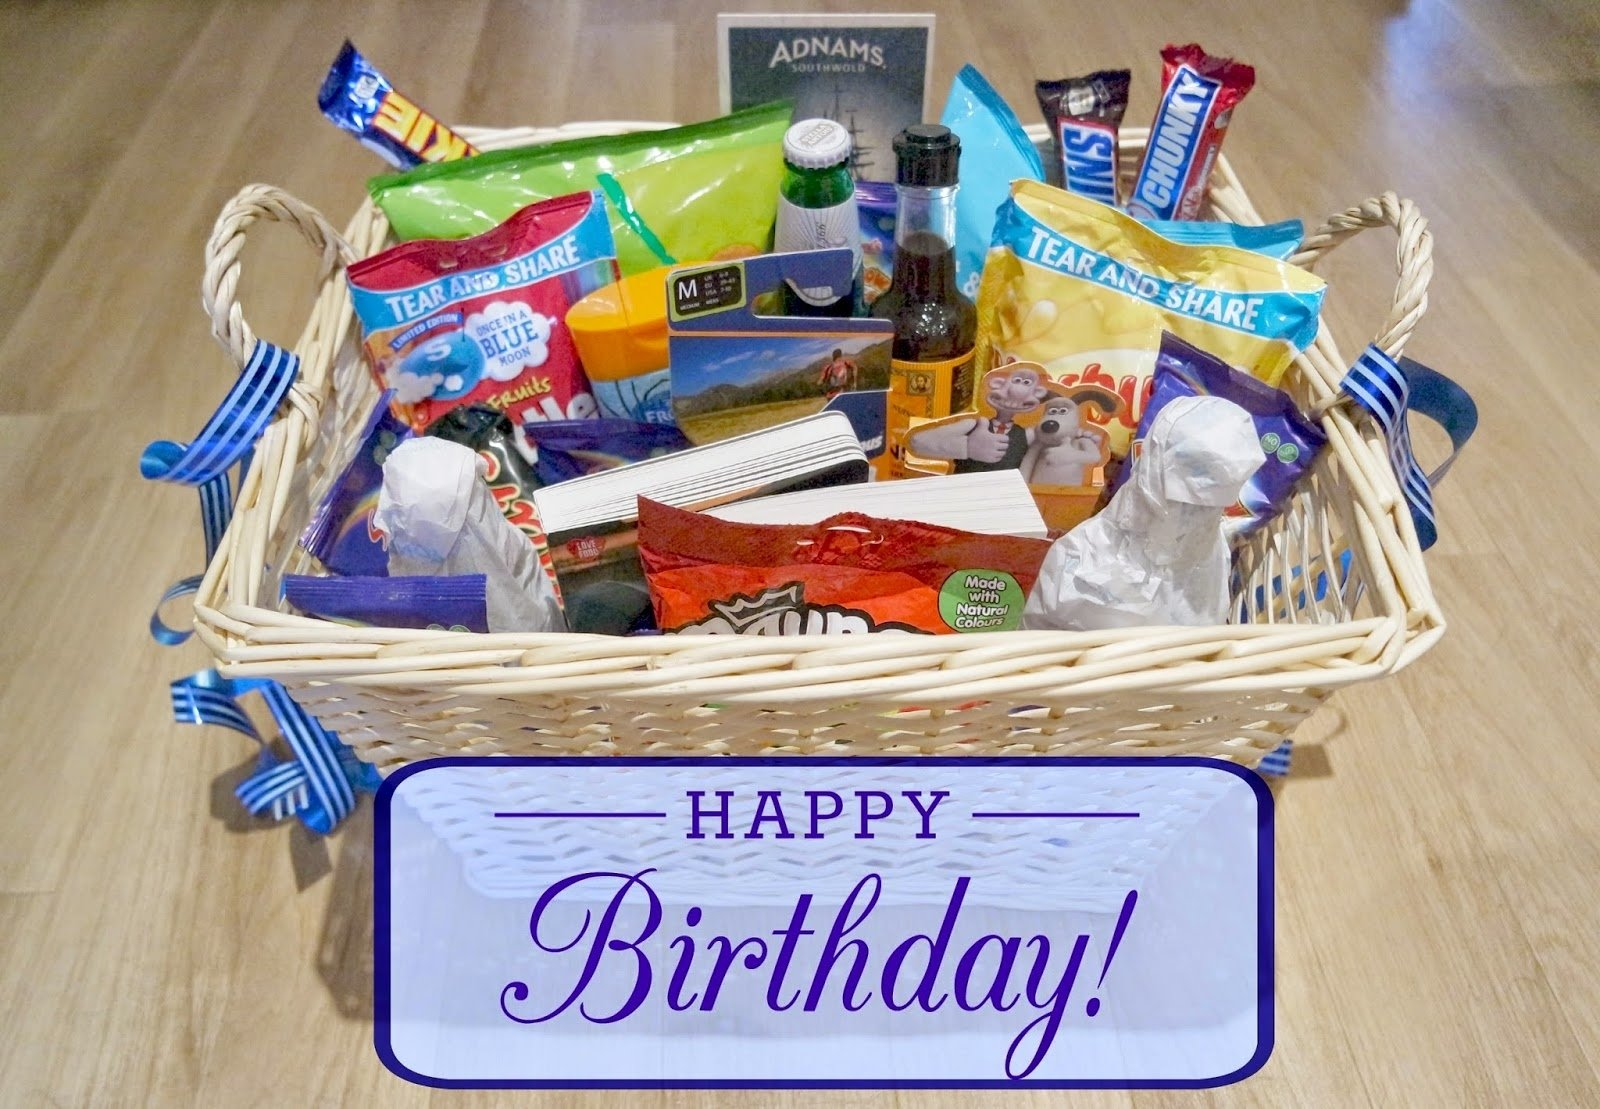 10 Trendy Ideas For 50Th Birthday Gift Uptown Peach My Dads 50th Hamper Mens